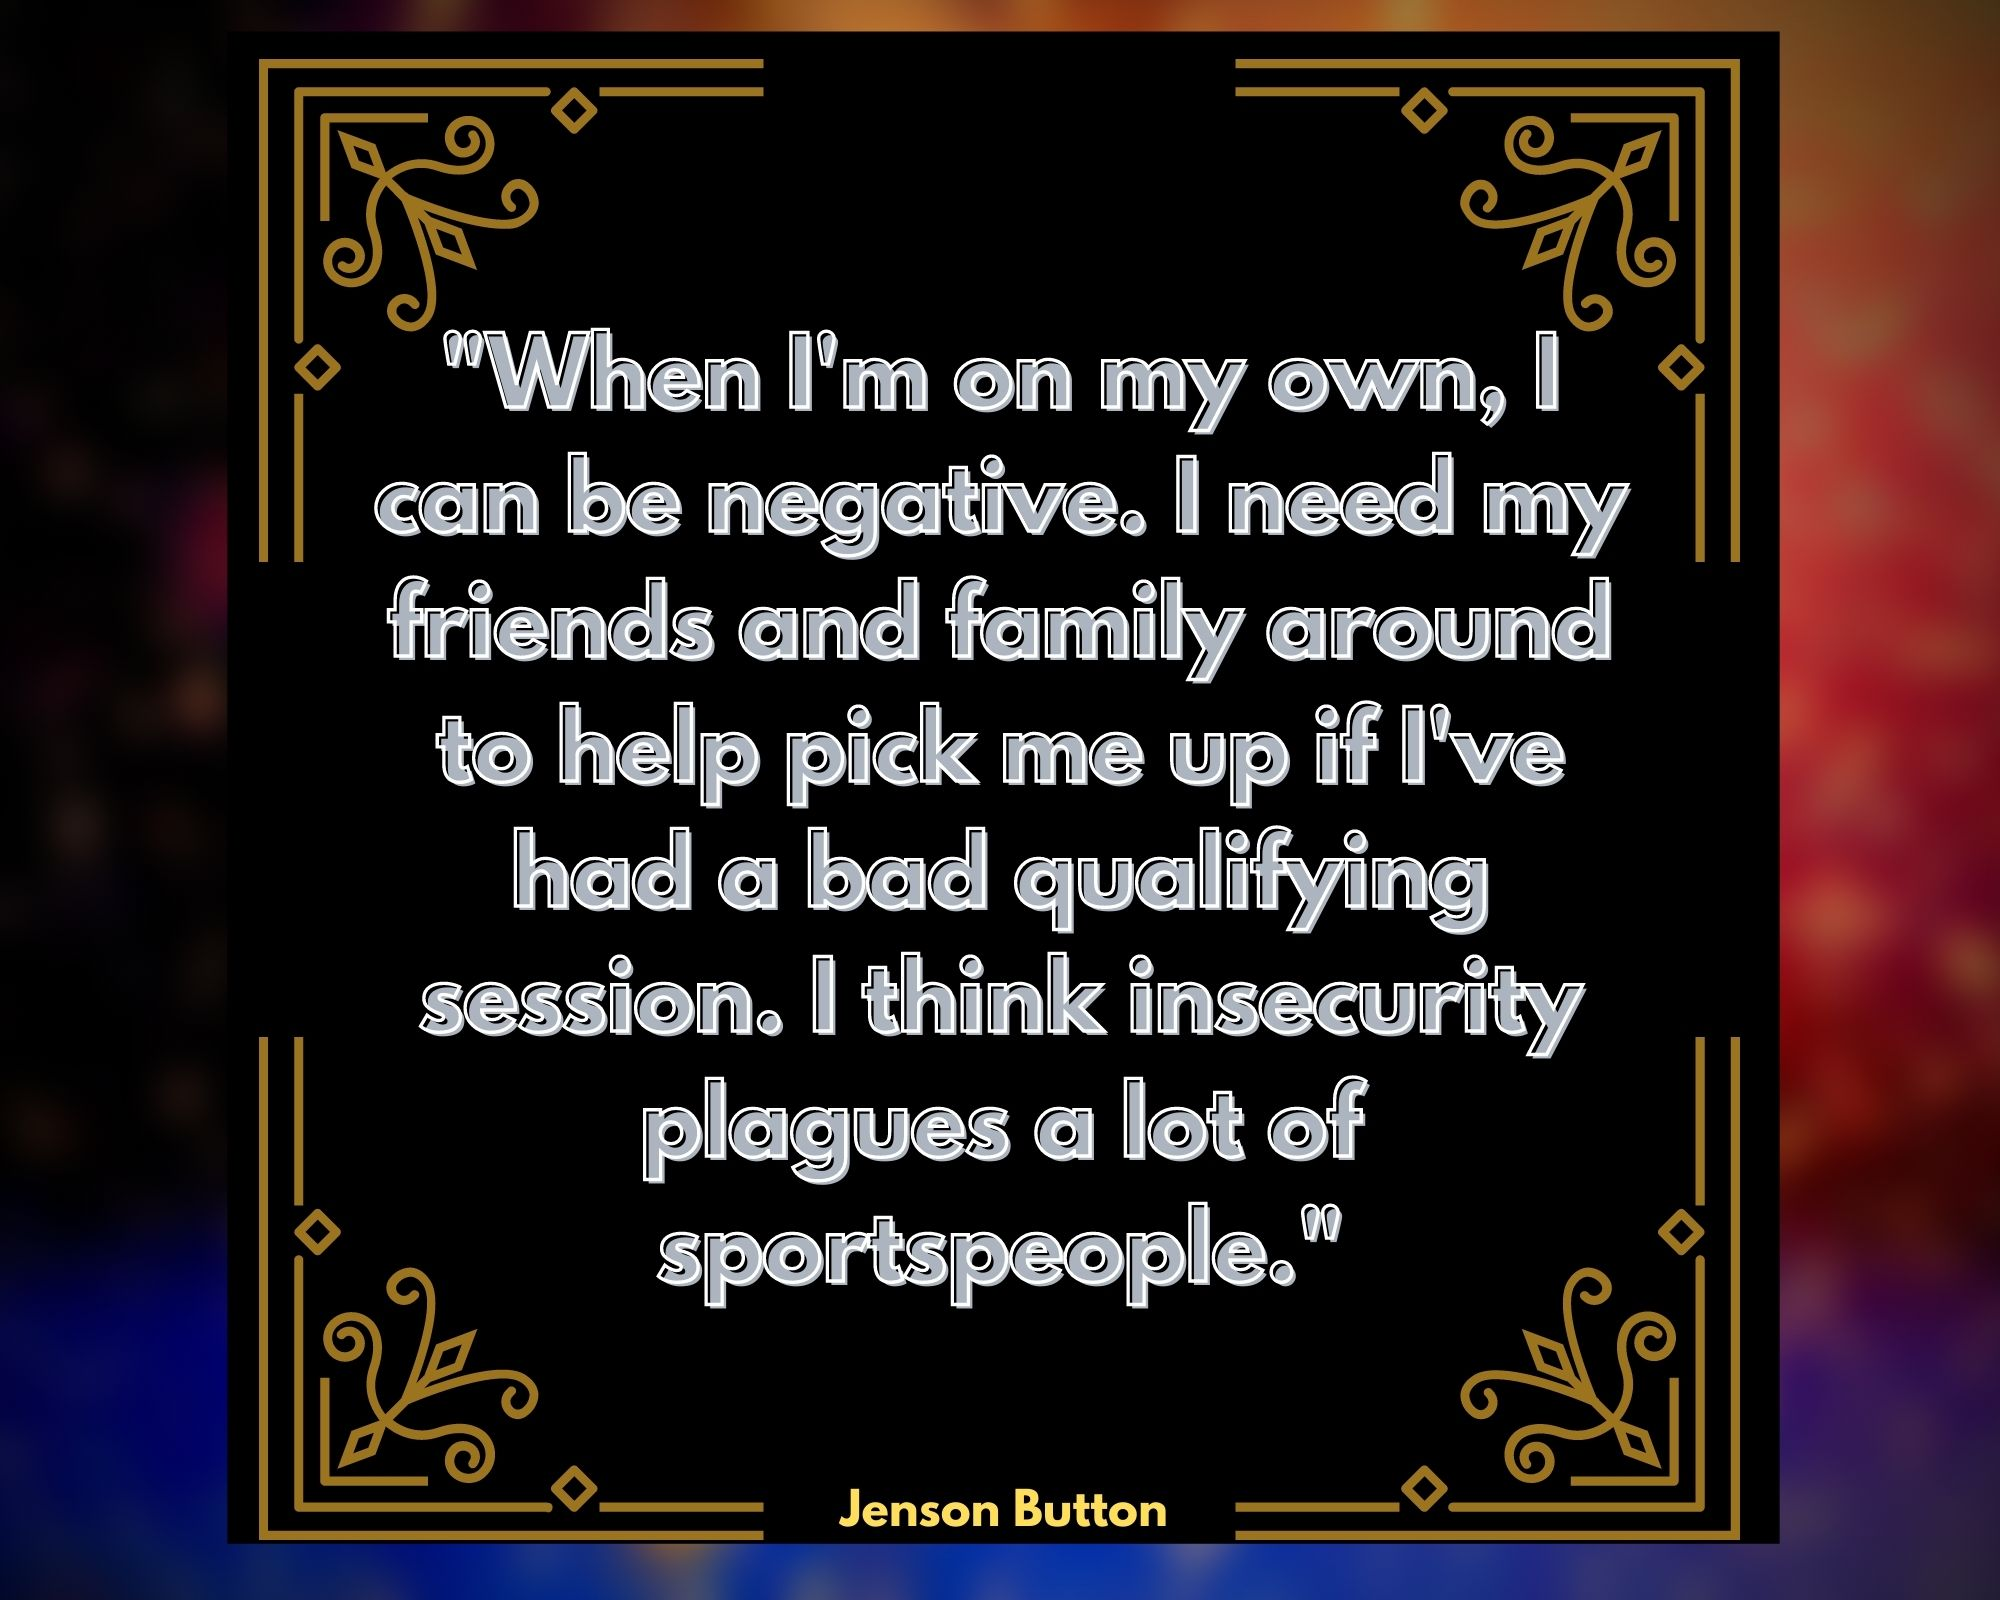 Quotes by Jenson Button